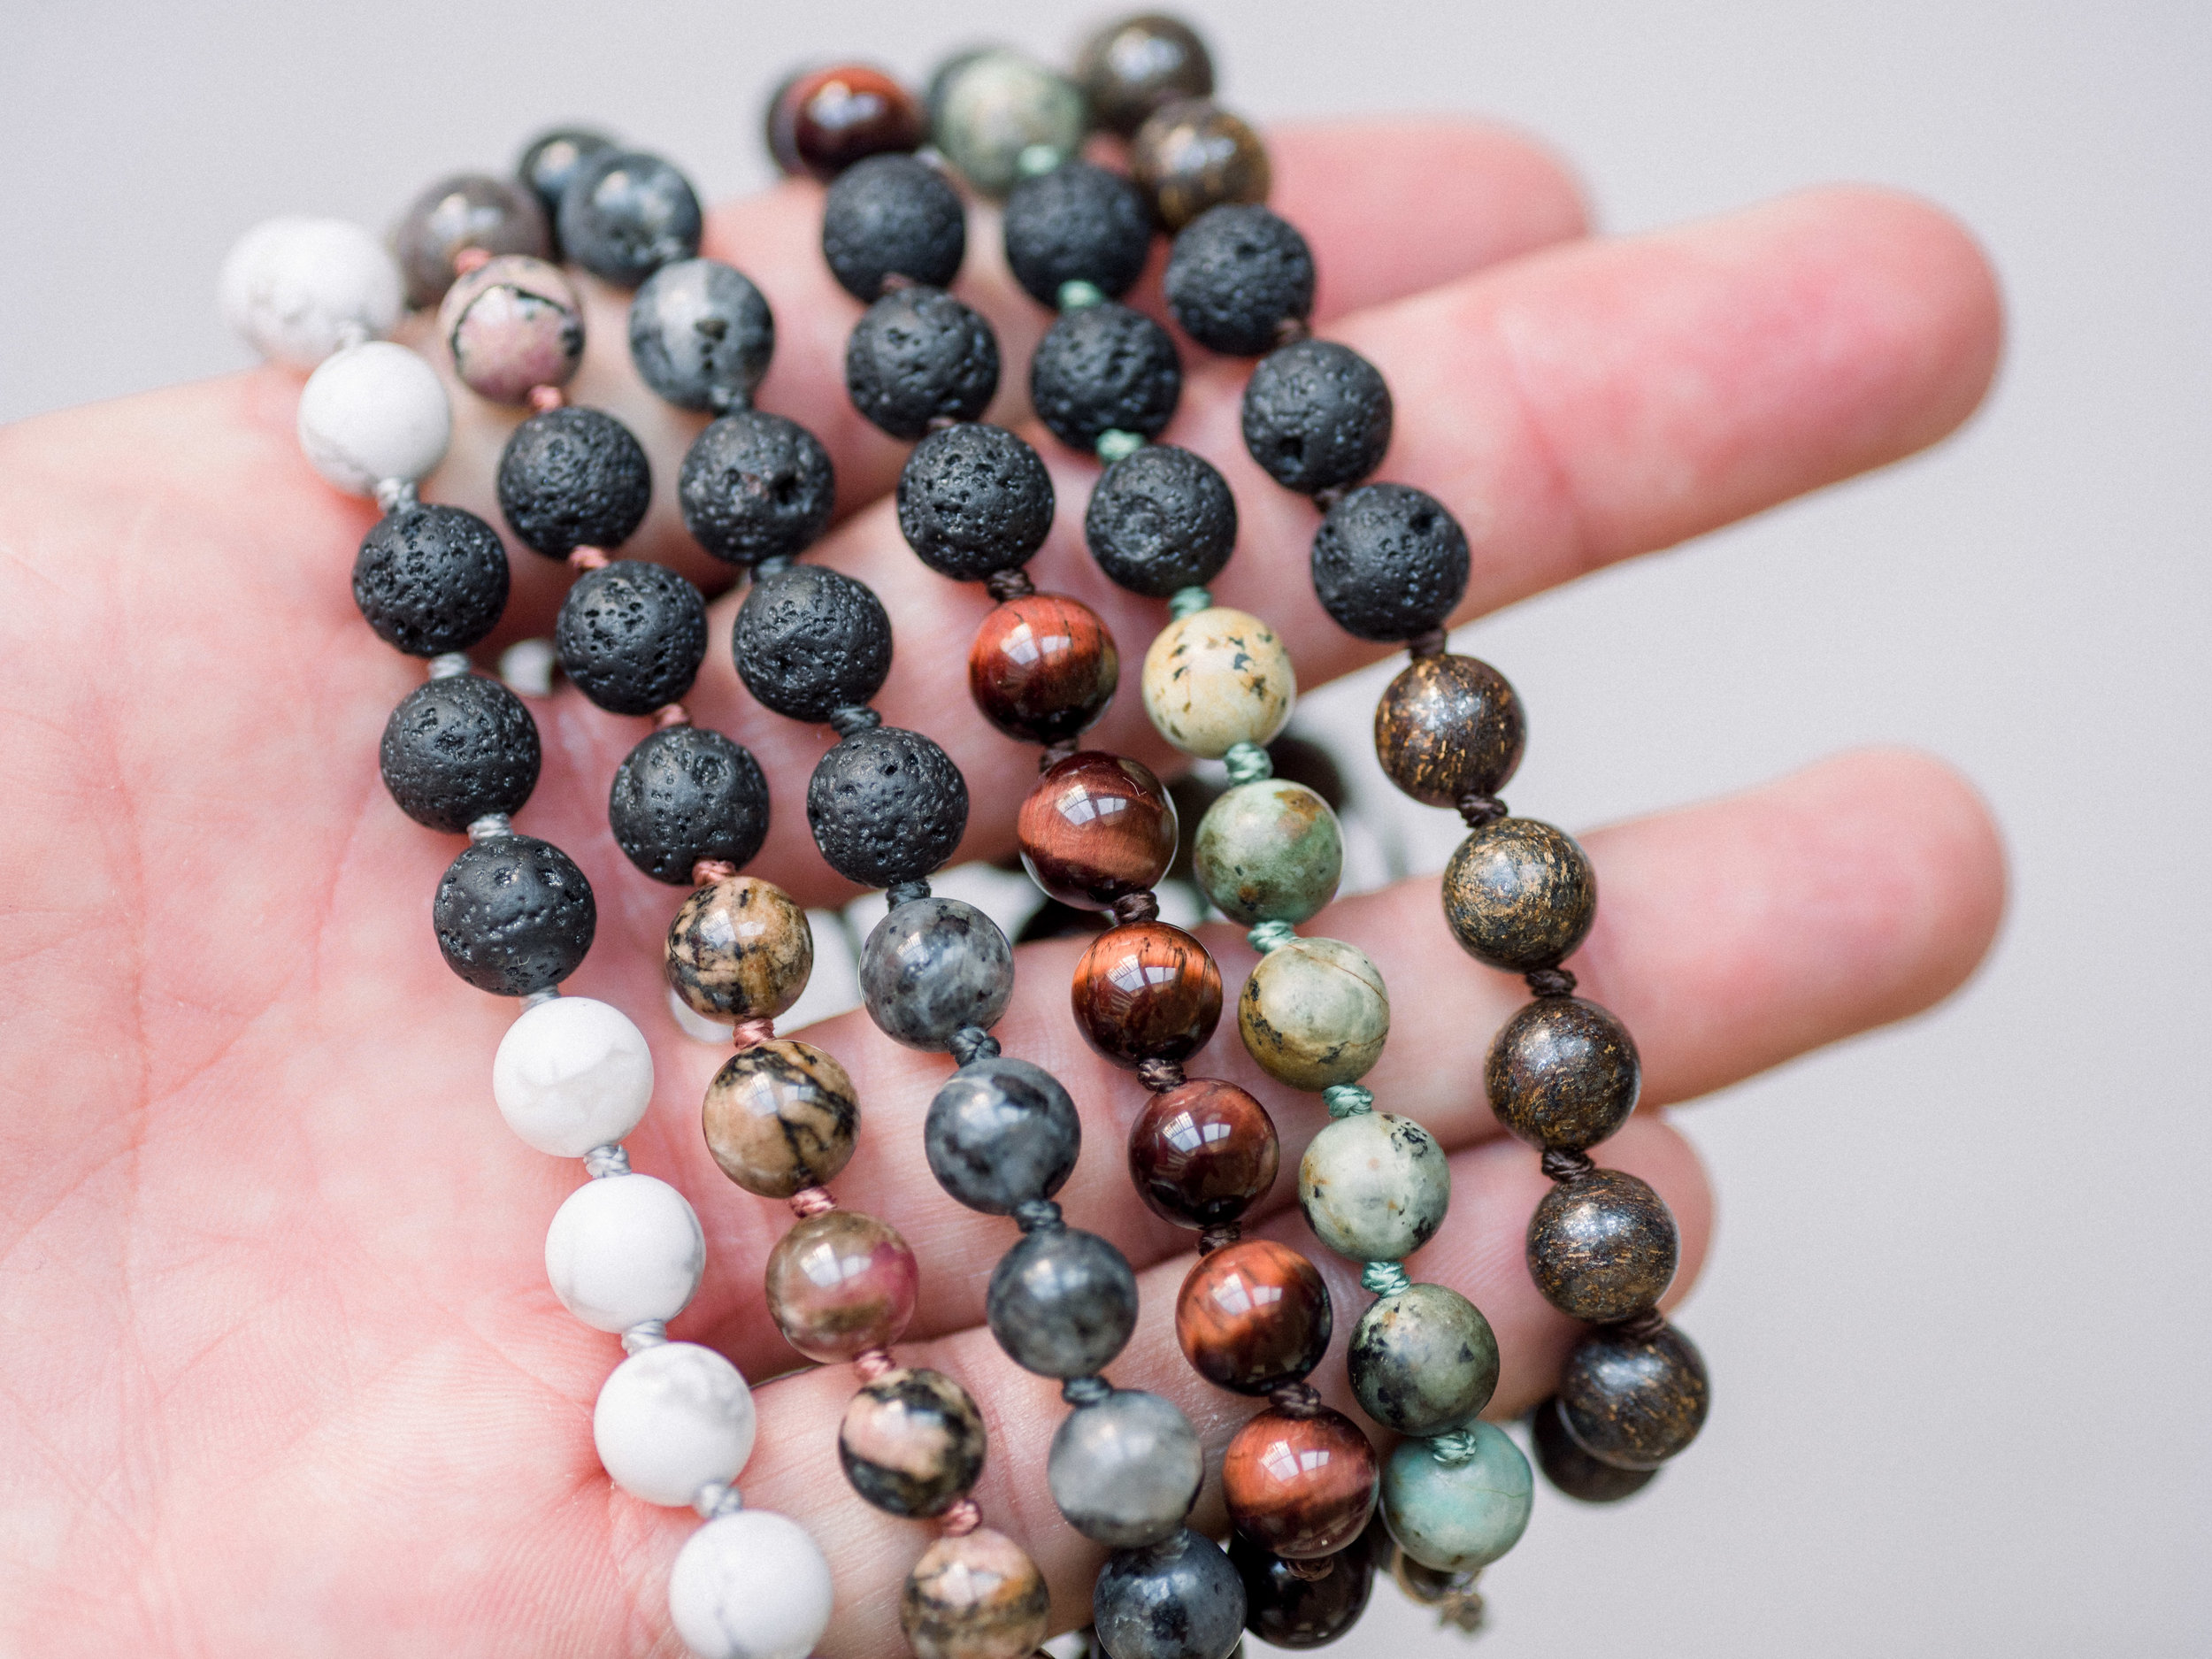 From left to right: White Howlite, Rhodonite, Larvakite, Red Tiger's Eye, African Turquoise + Bronzite.